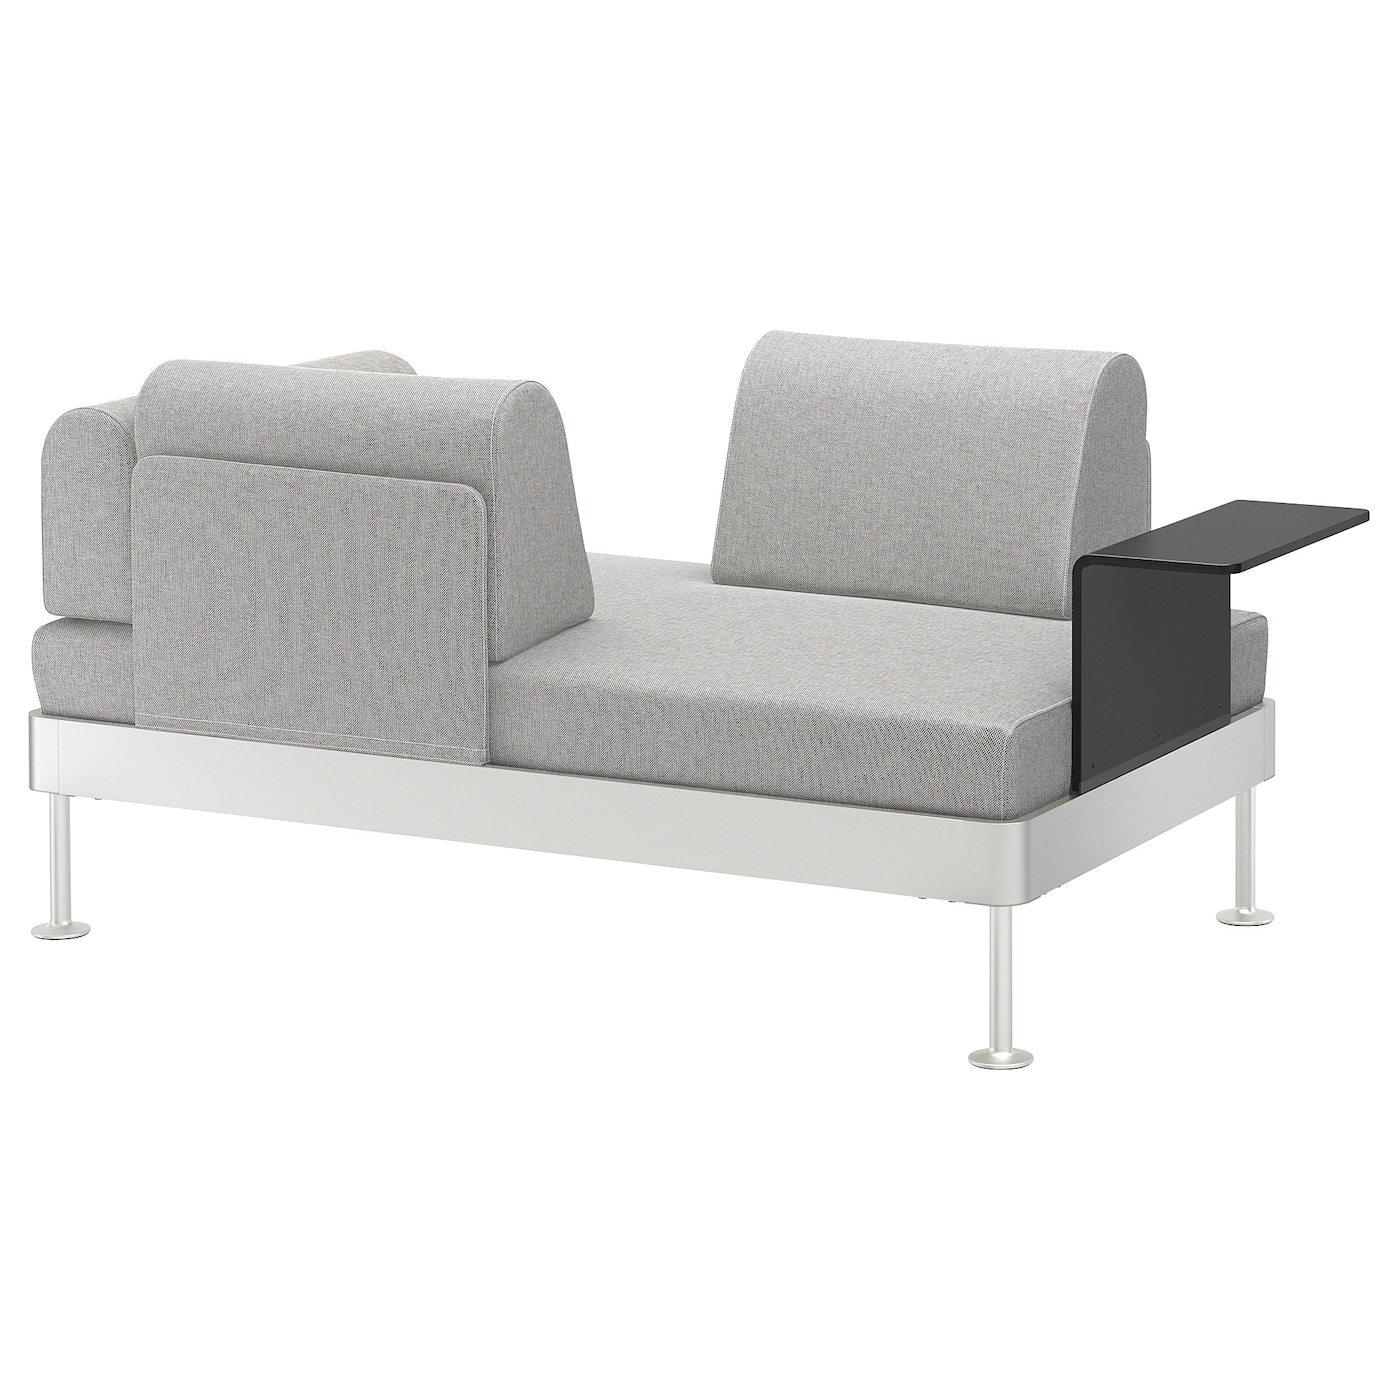 Two seater sofas ikea ireland dublin - Ikea couch planer ...